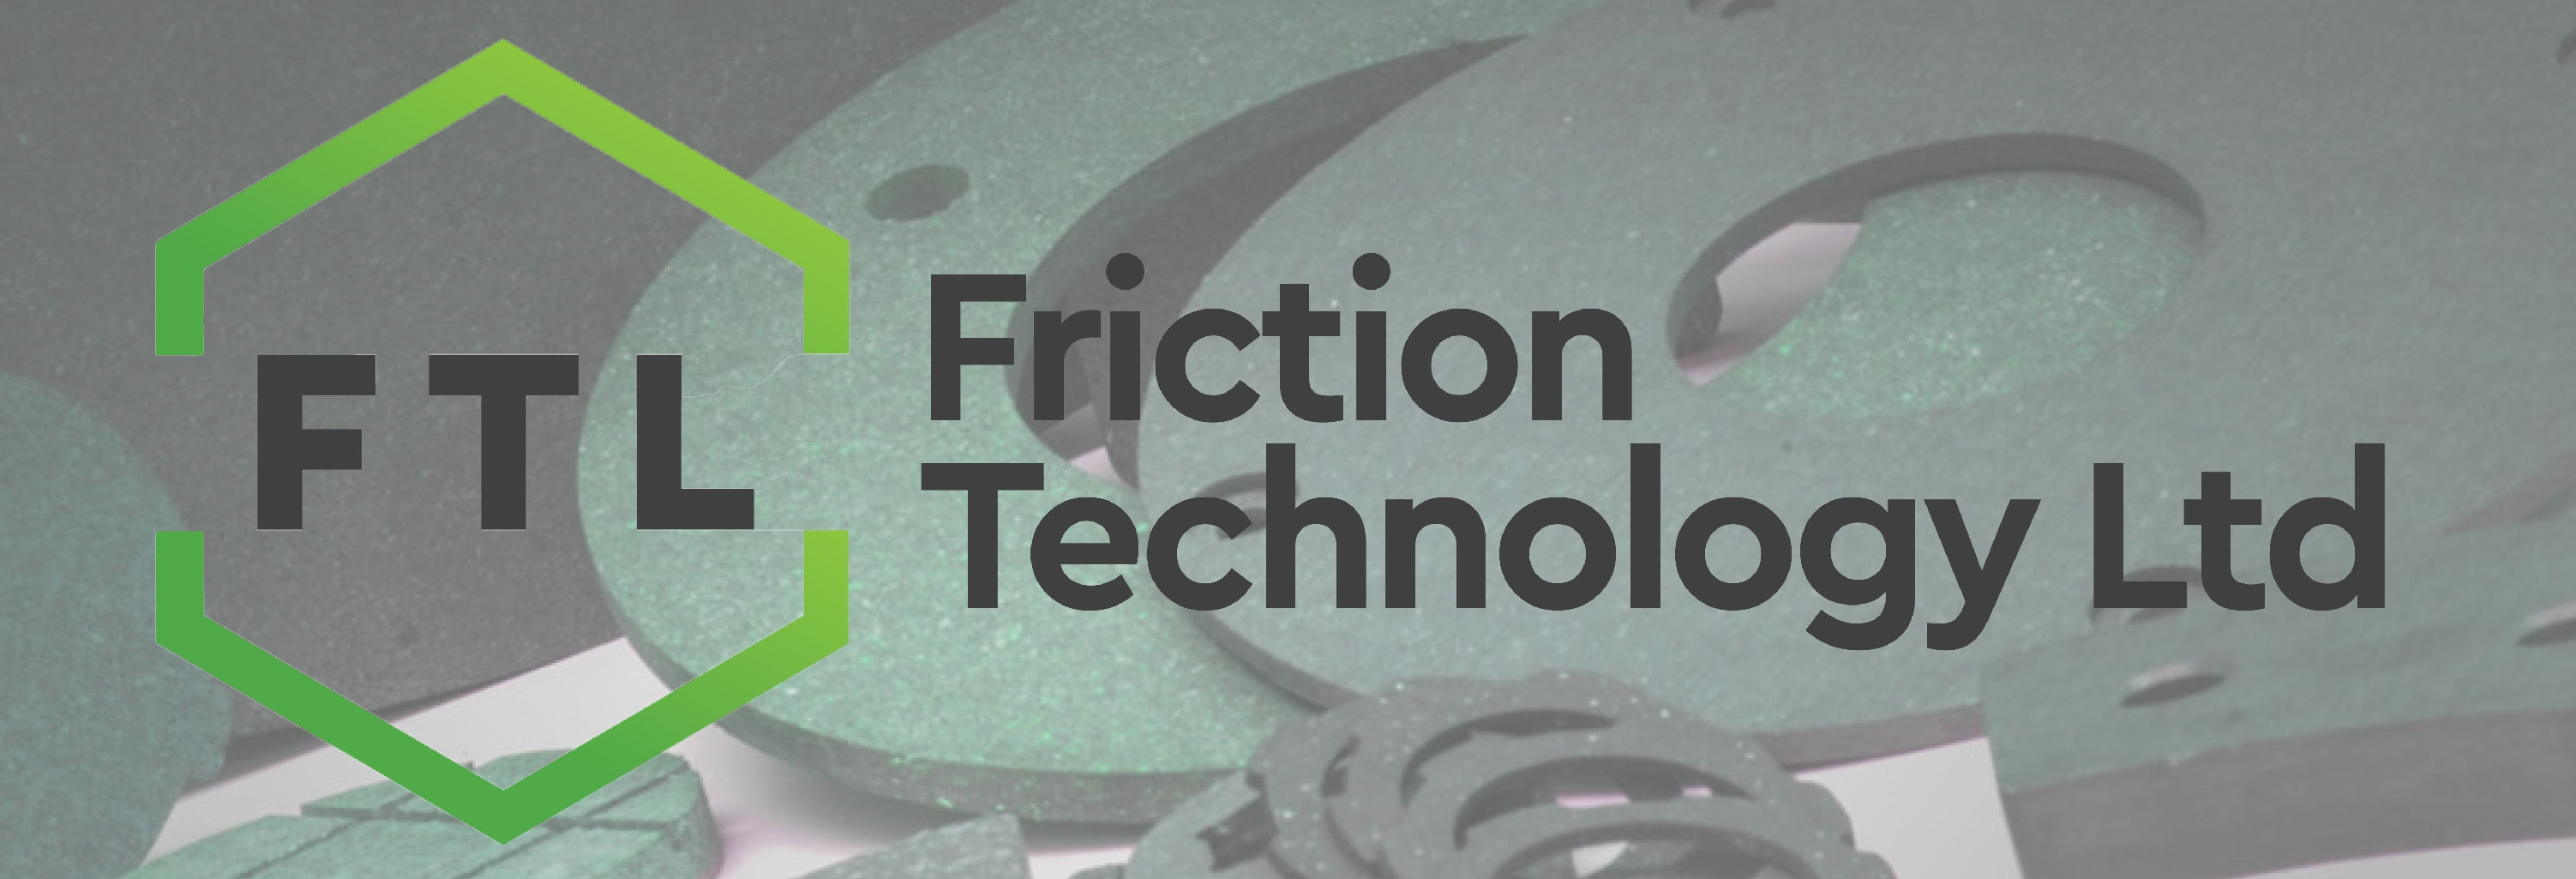 Friction Technology